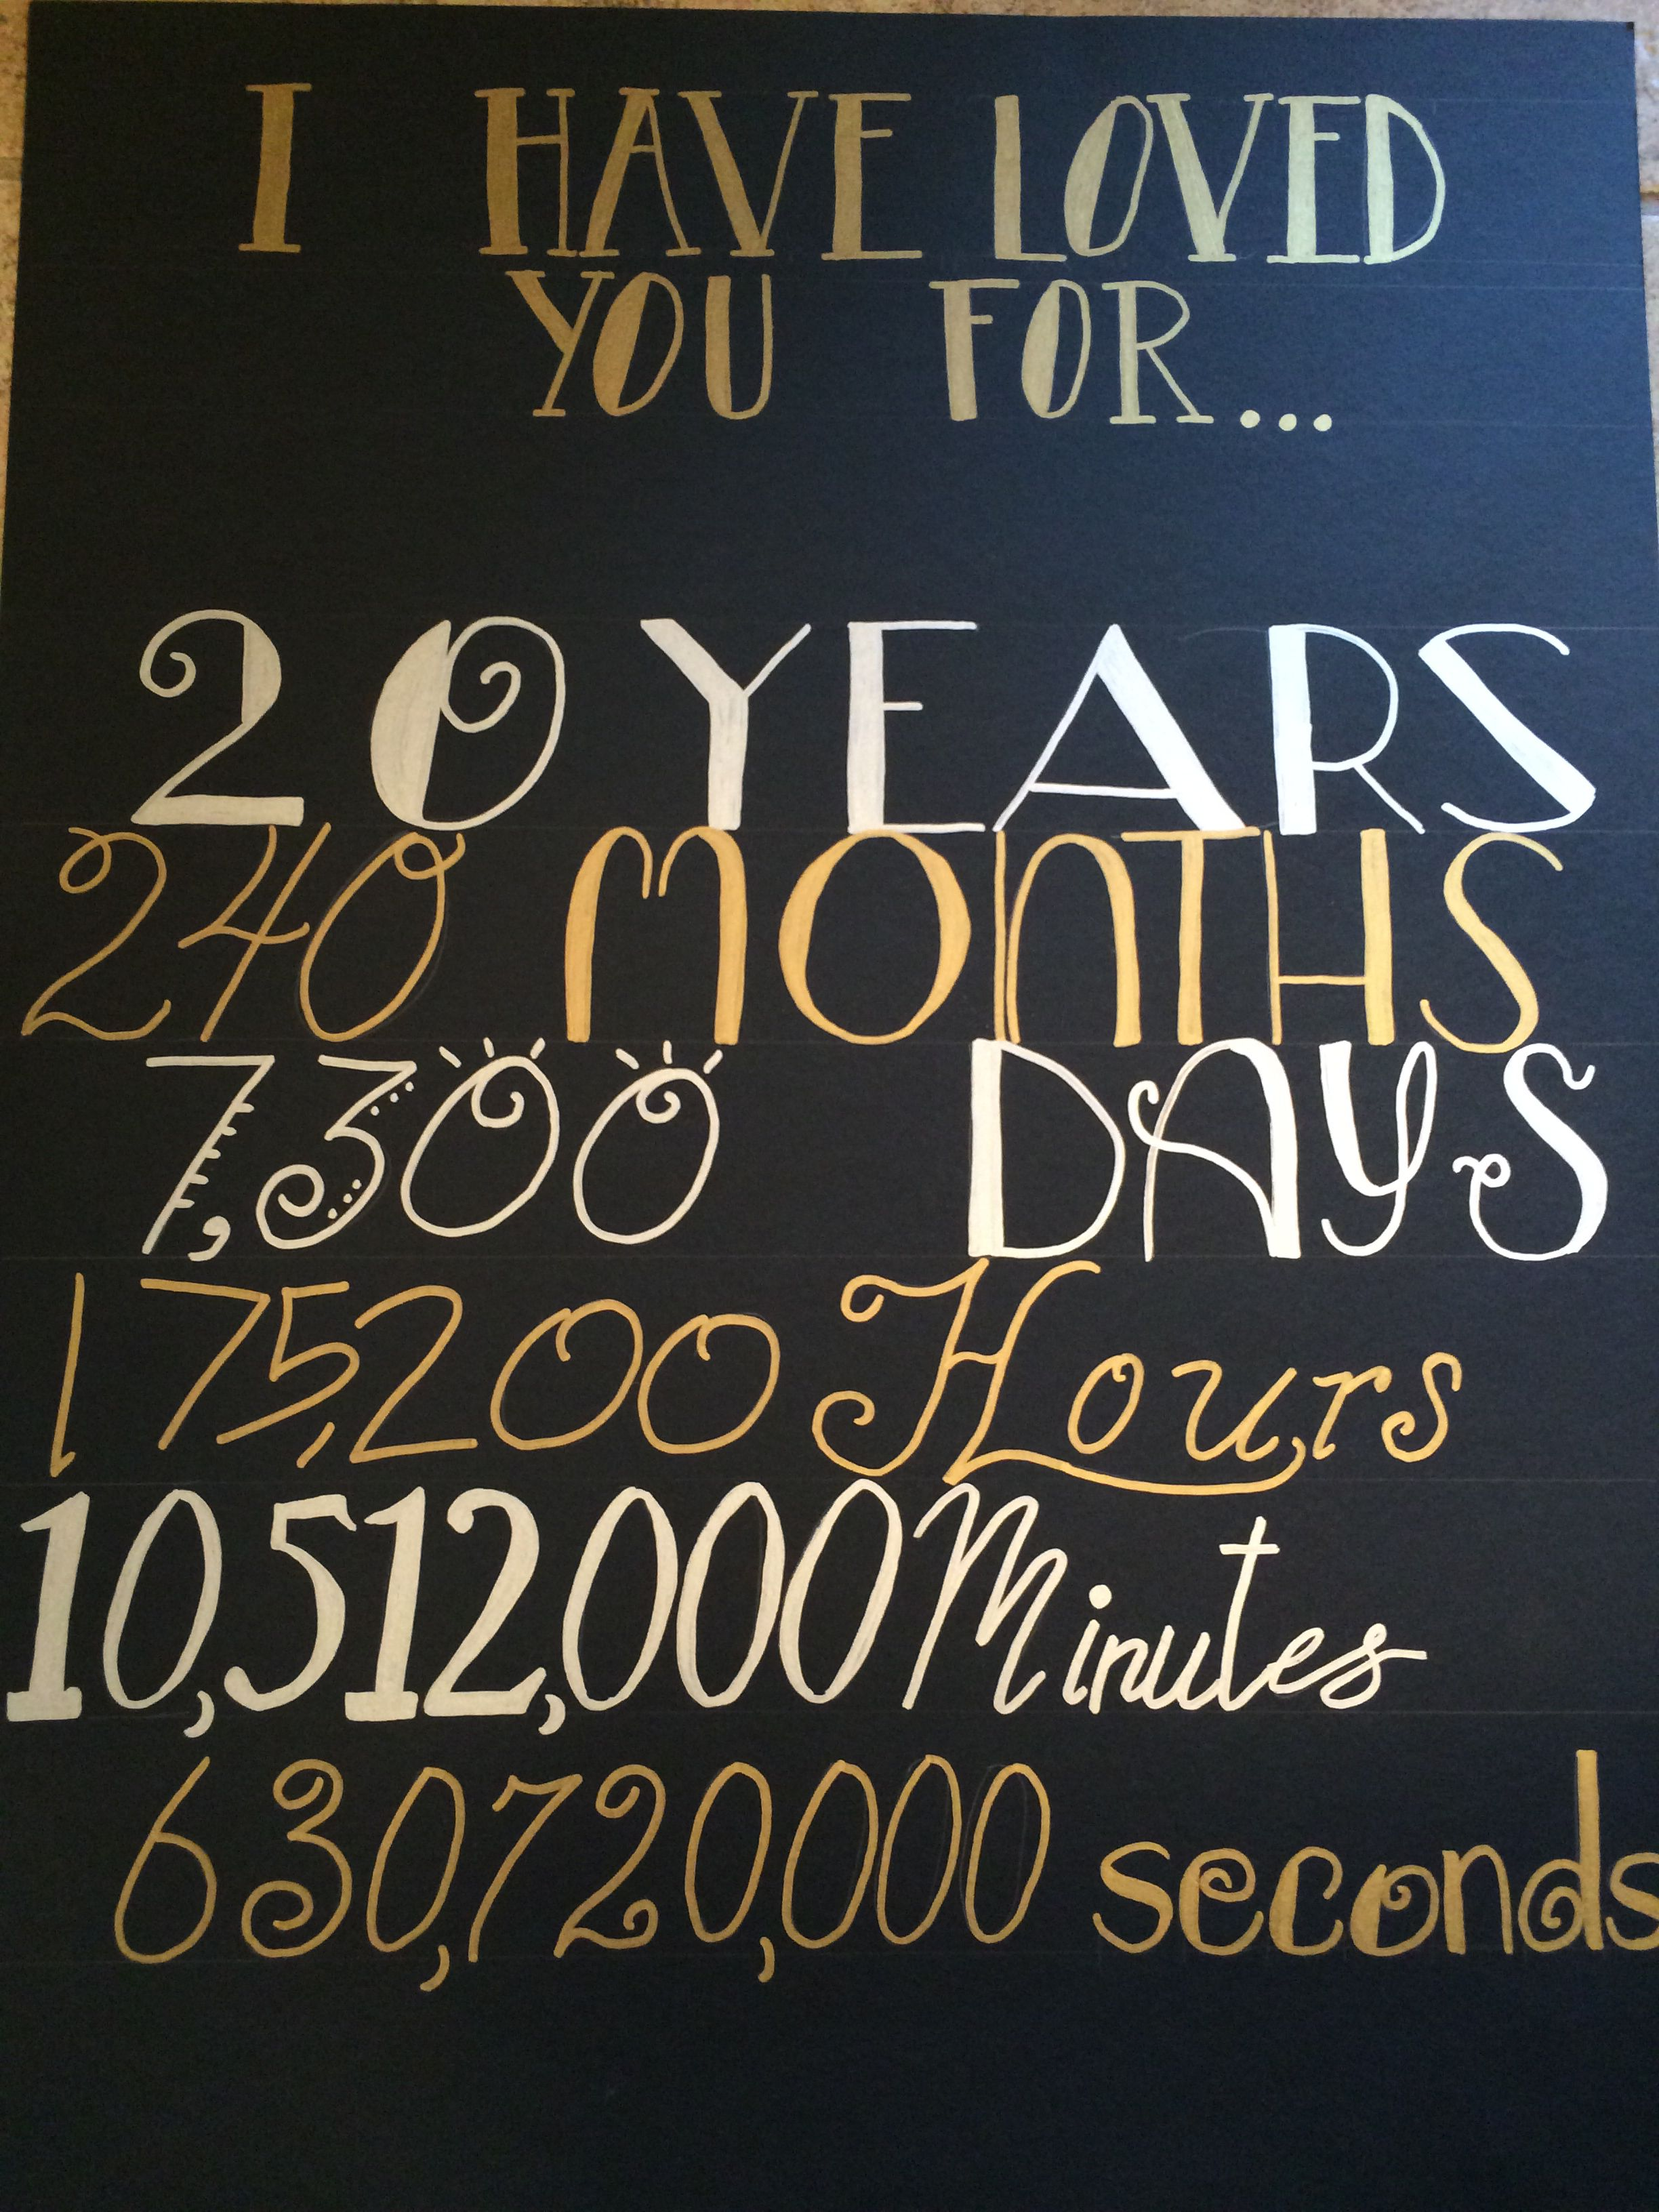 20th anniversary time | Misc. | Pinterest | 20th anniversary and ...